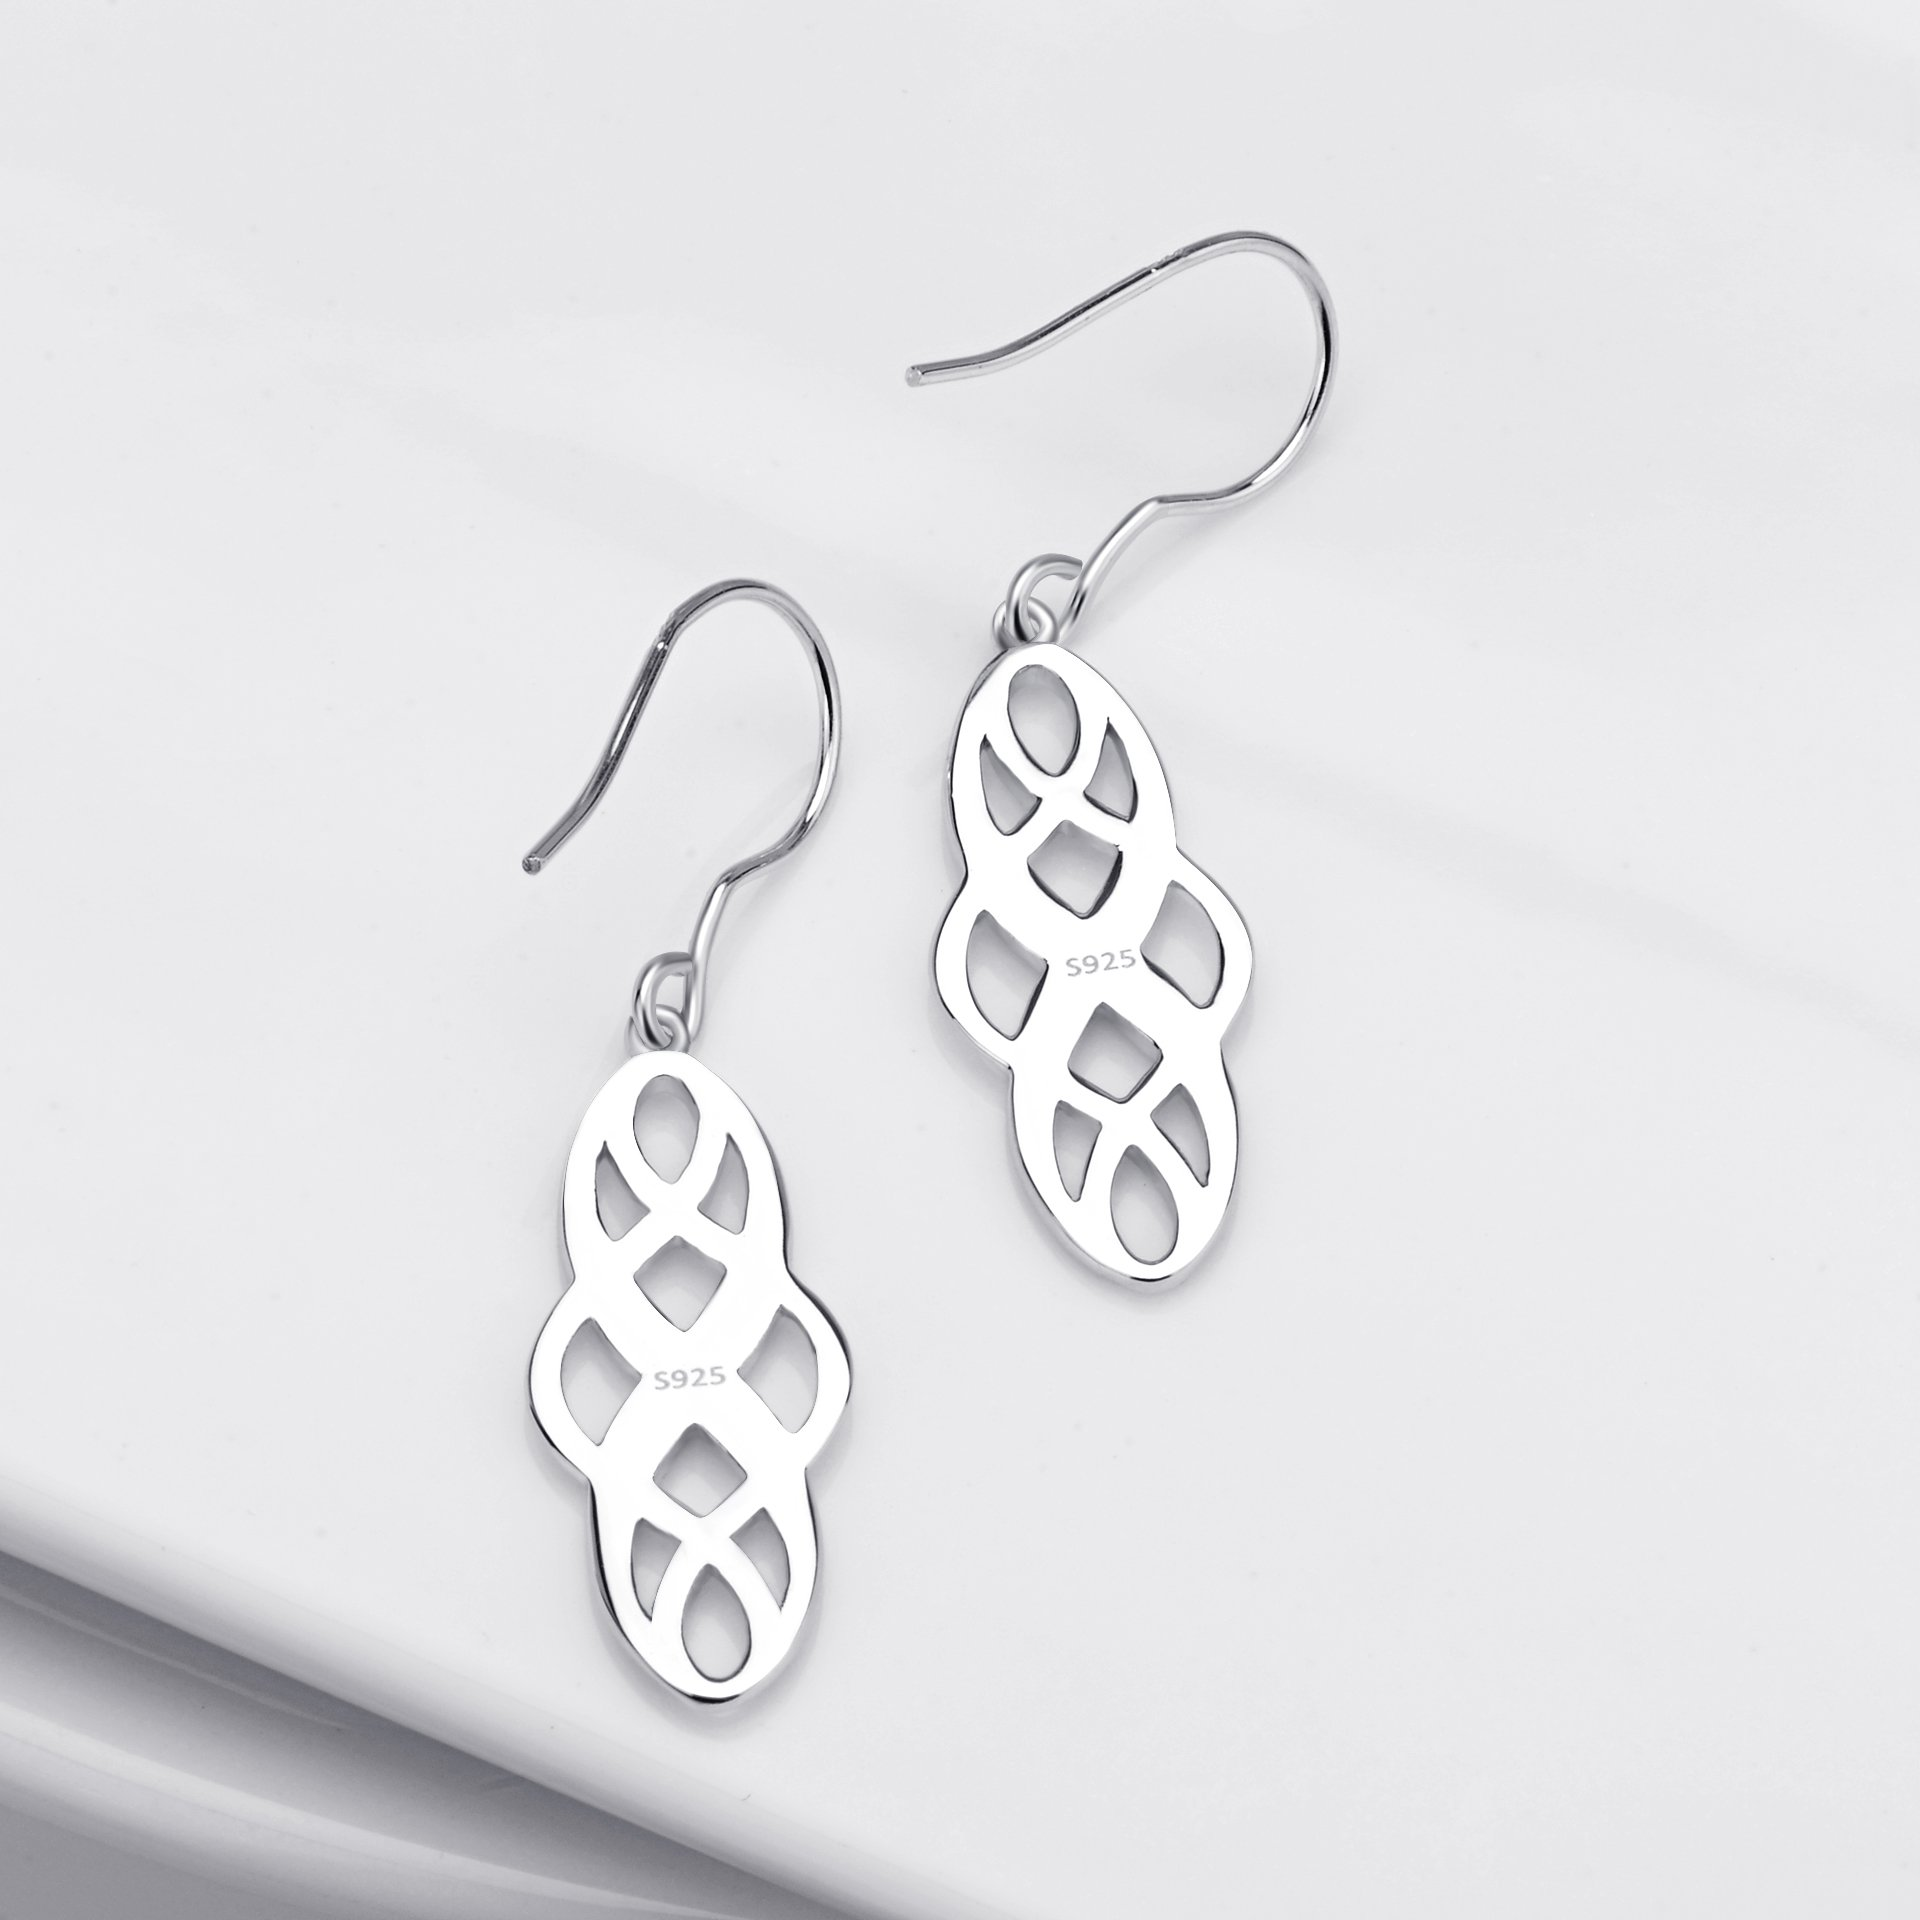 S925 Silver Earrings Solid Sterling Silver Polished Good Luck Irish Celtic Knot Vintage Dangles (Platinum) by Angel caller (Image #5)